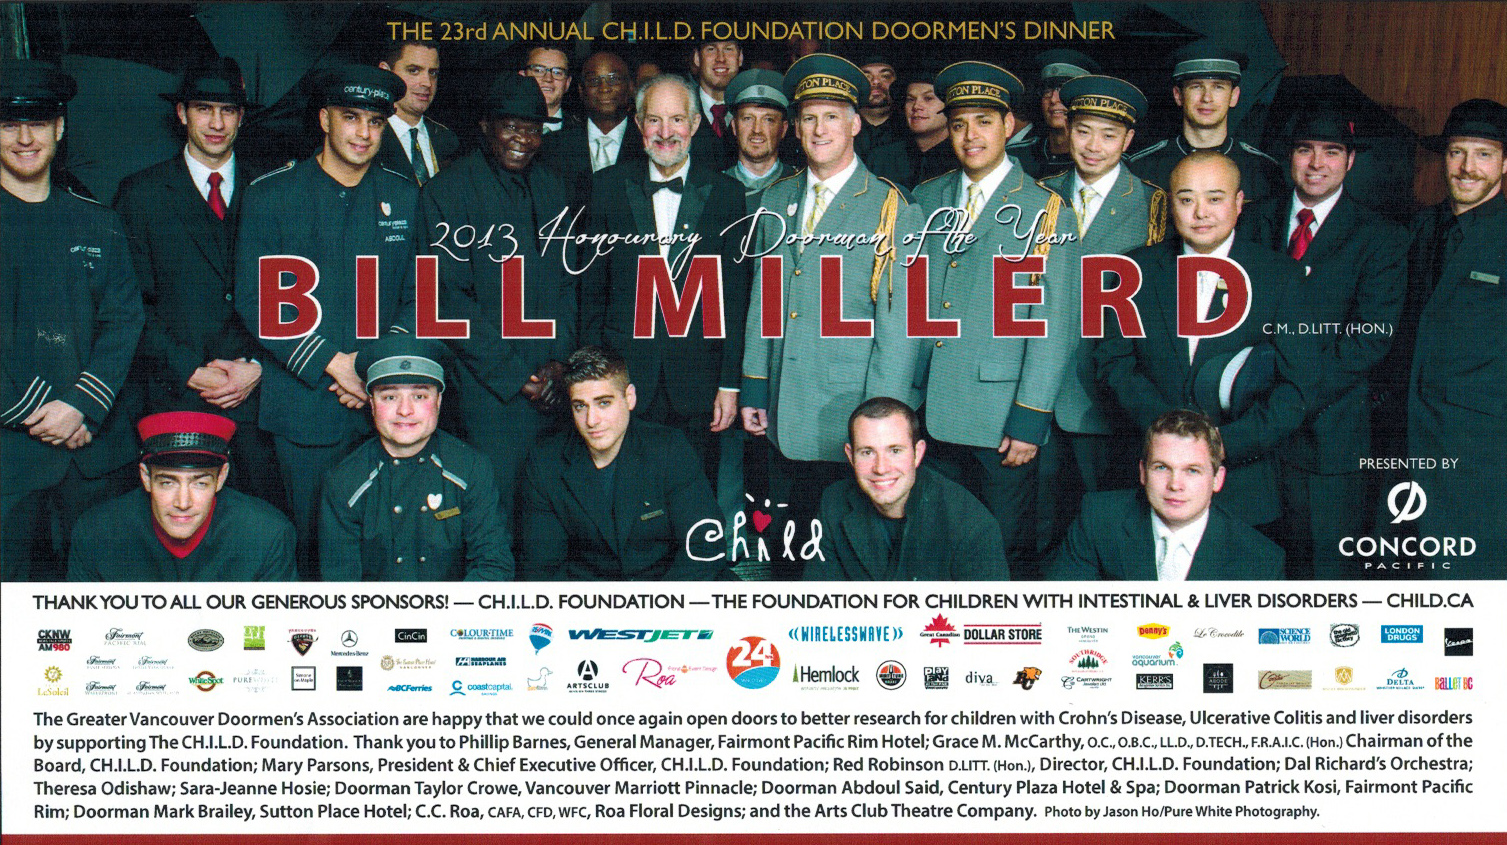 24 Hour  Newspaper has printed a page advertisement congratulating the support for the CH.I.L.D. Foundation!